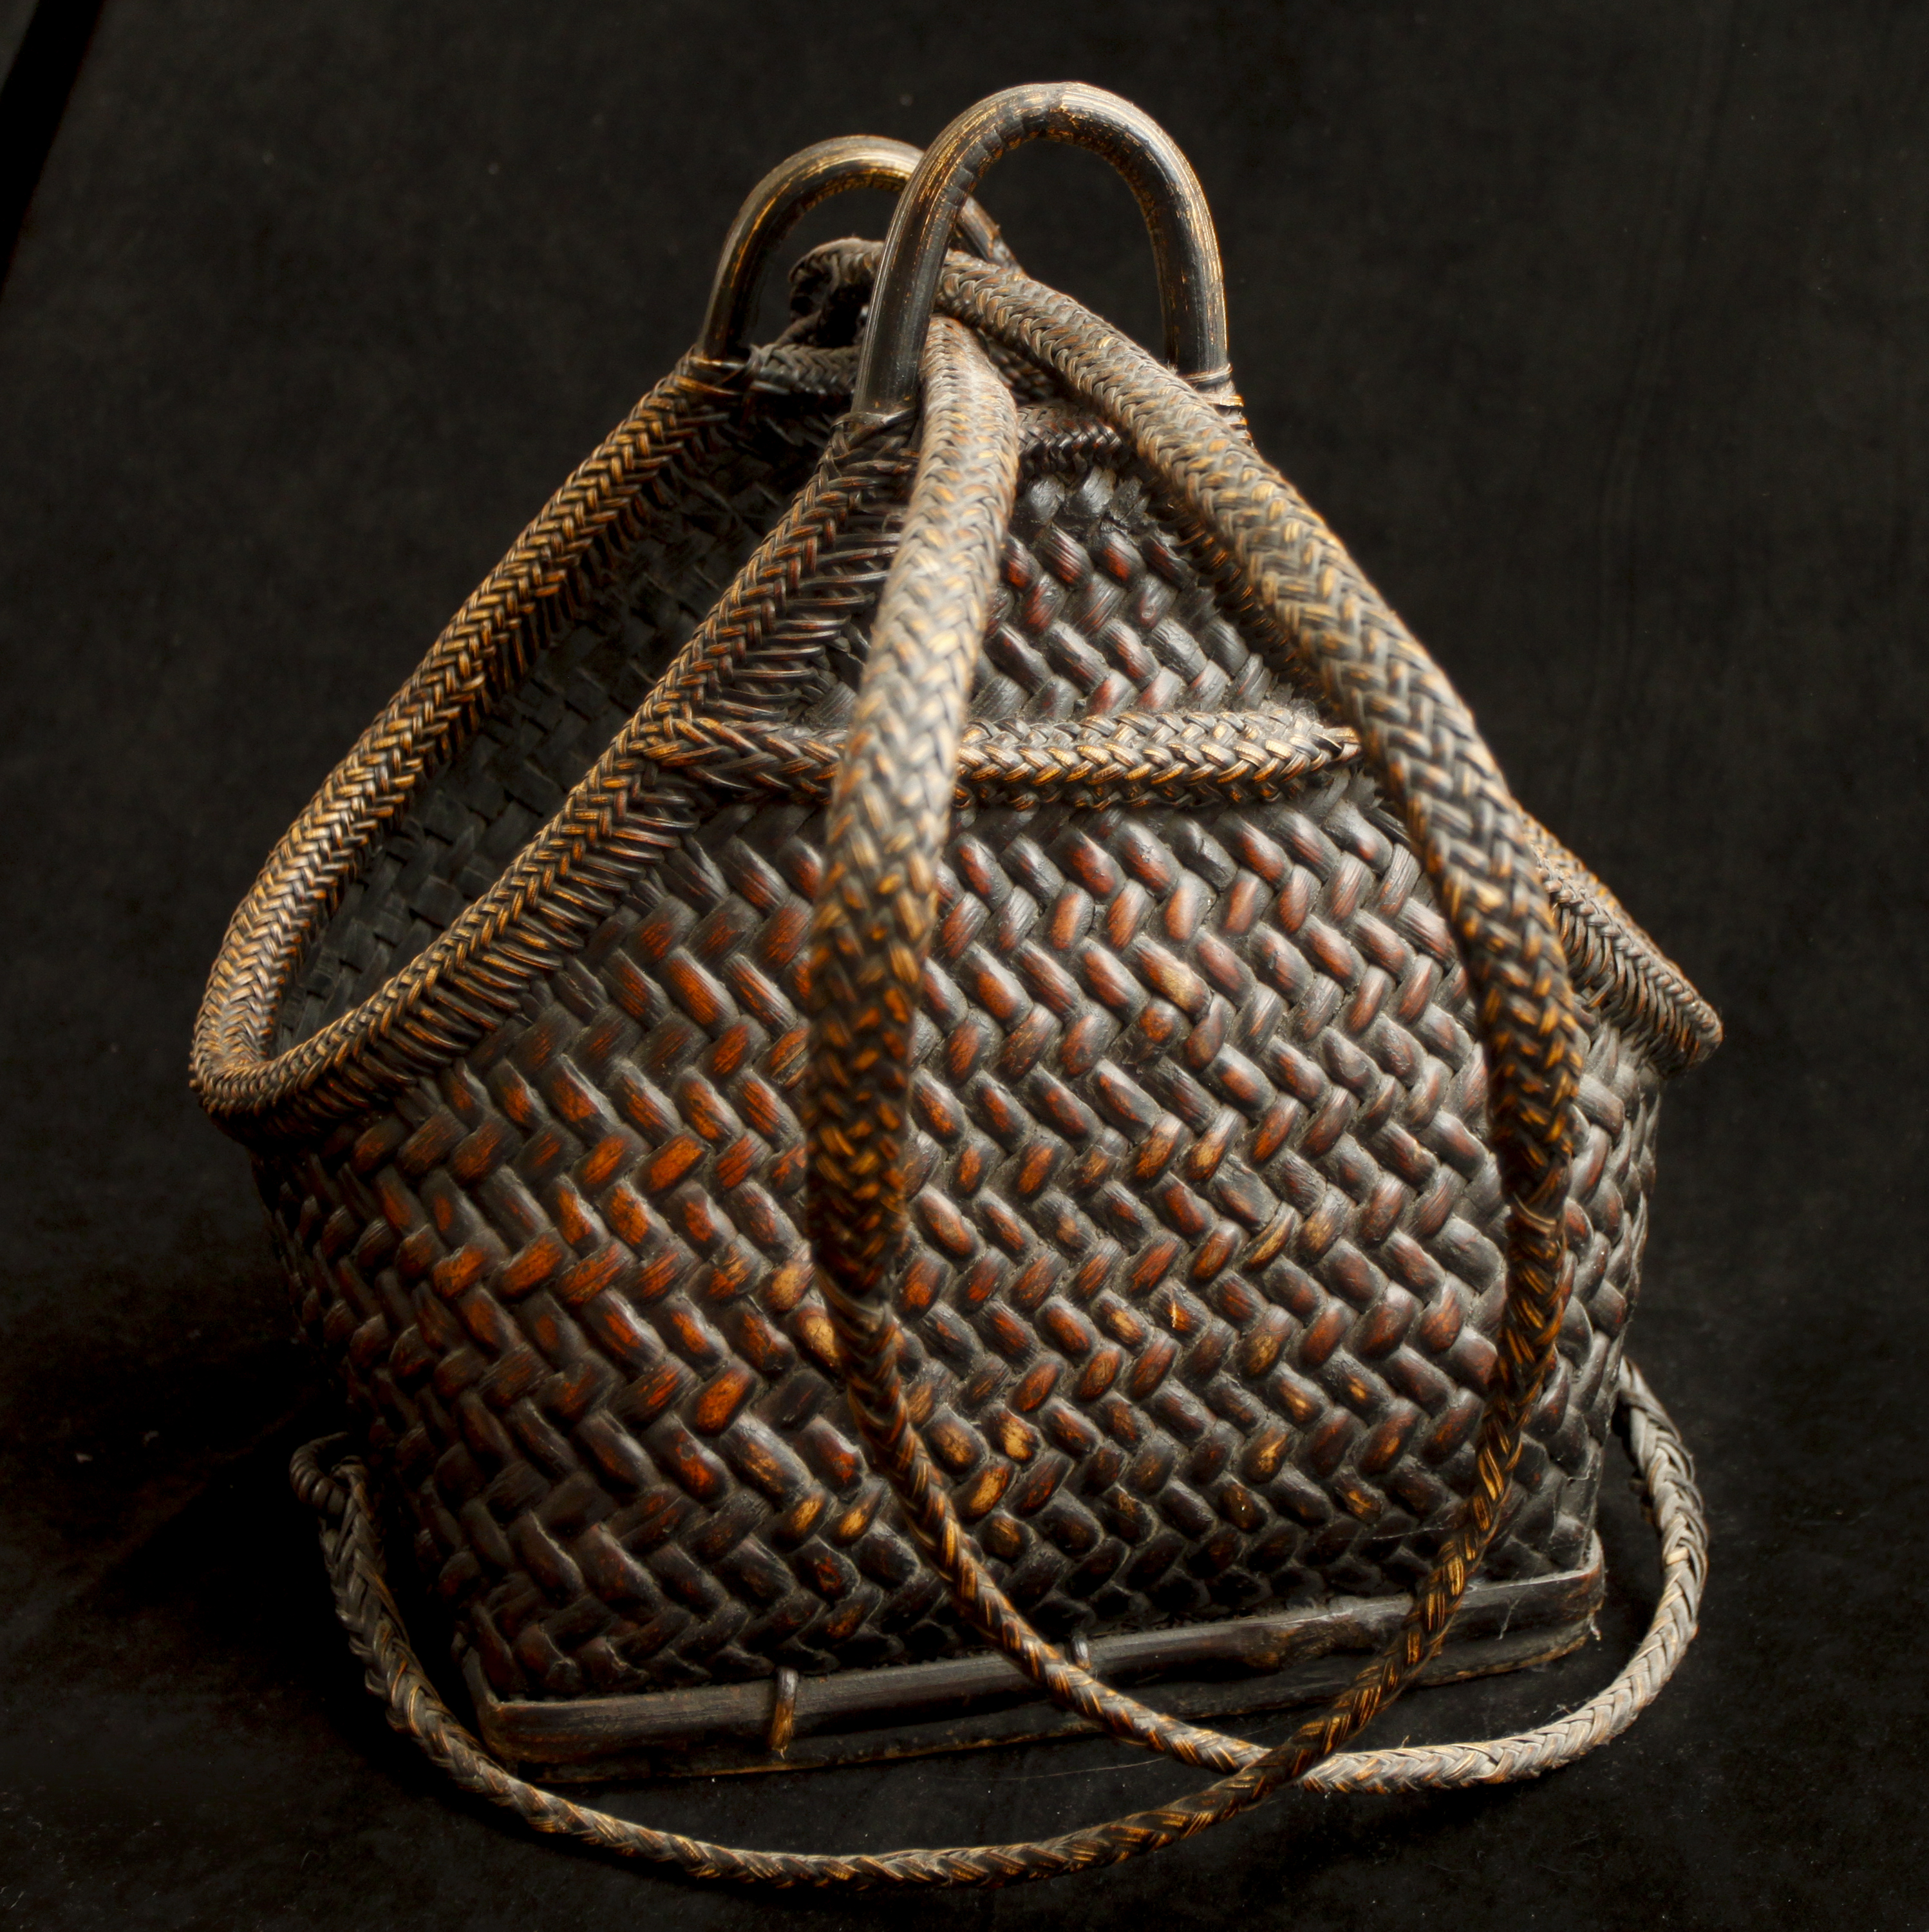 how to draw a woven basket